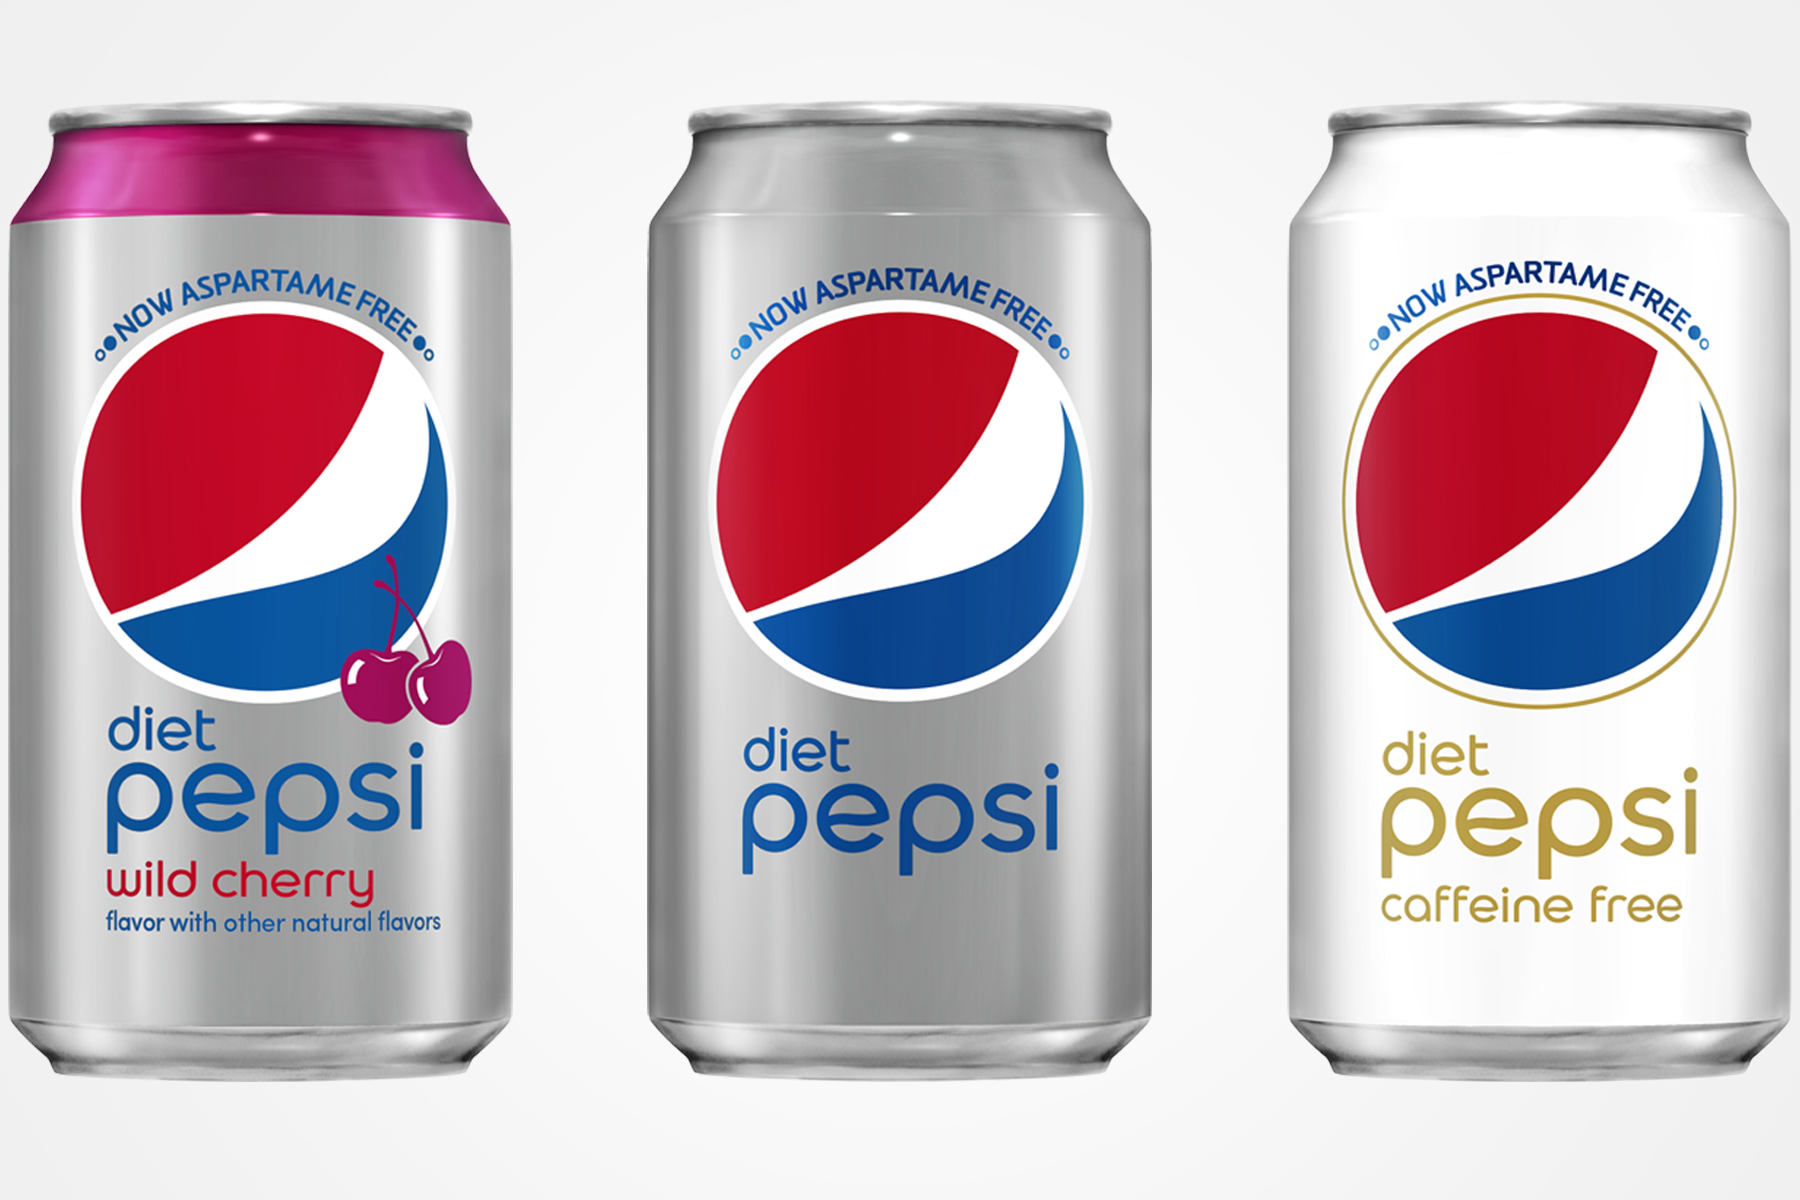 pepsi.com brand marketing website case study Pepsico management and marketing print reference to the development of your site pepsicom or concentrated syrup in the other three elements in this case.